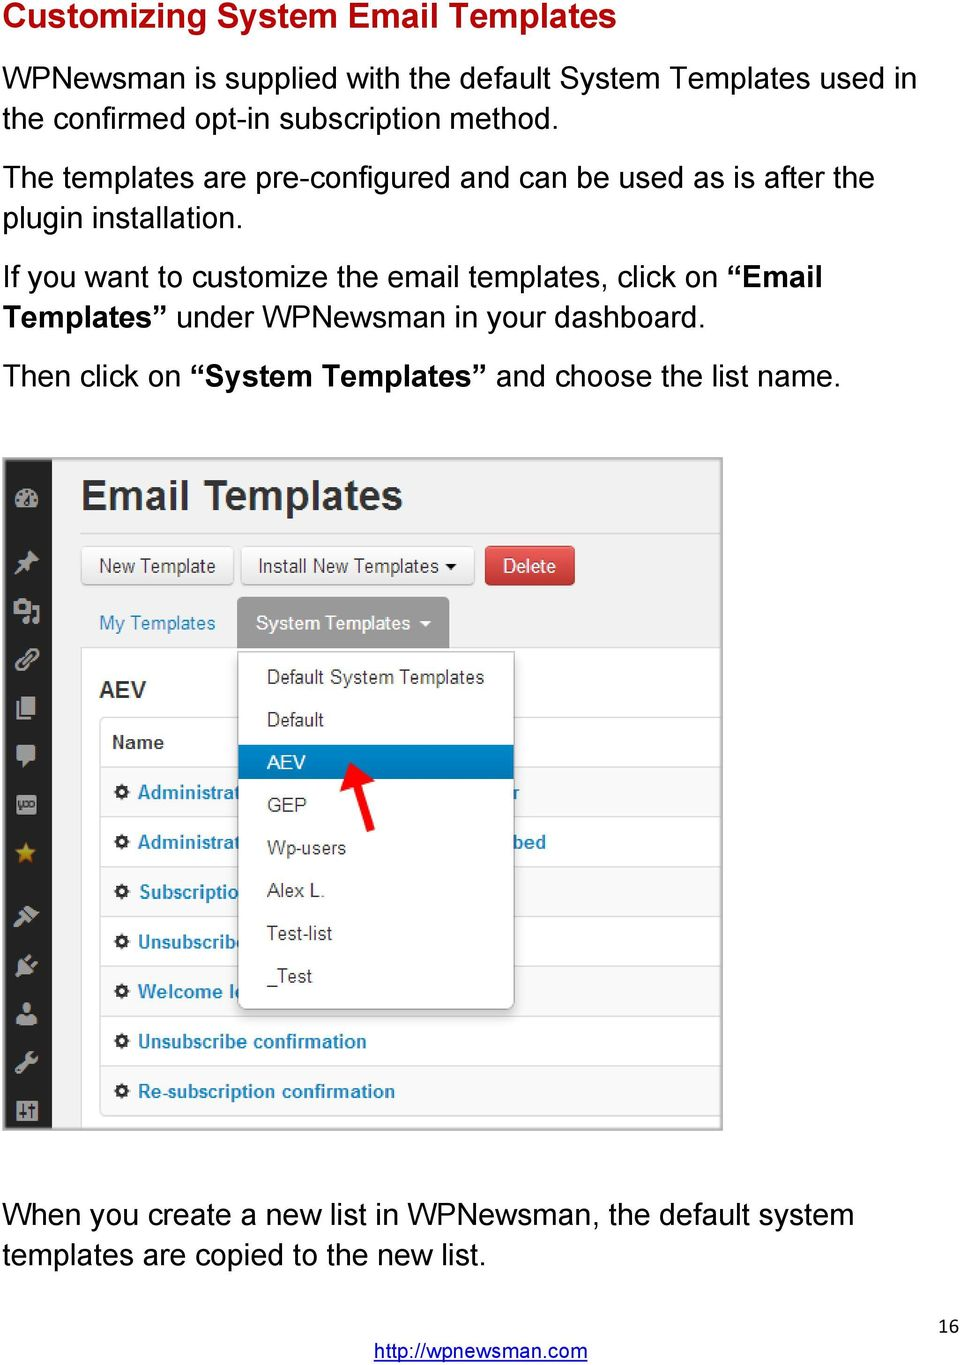 If you want to customize the email templates, click on Email Templates under WPNewsman in your dashboard.